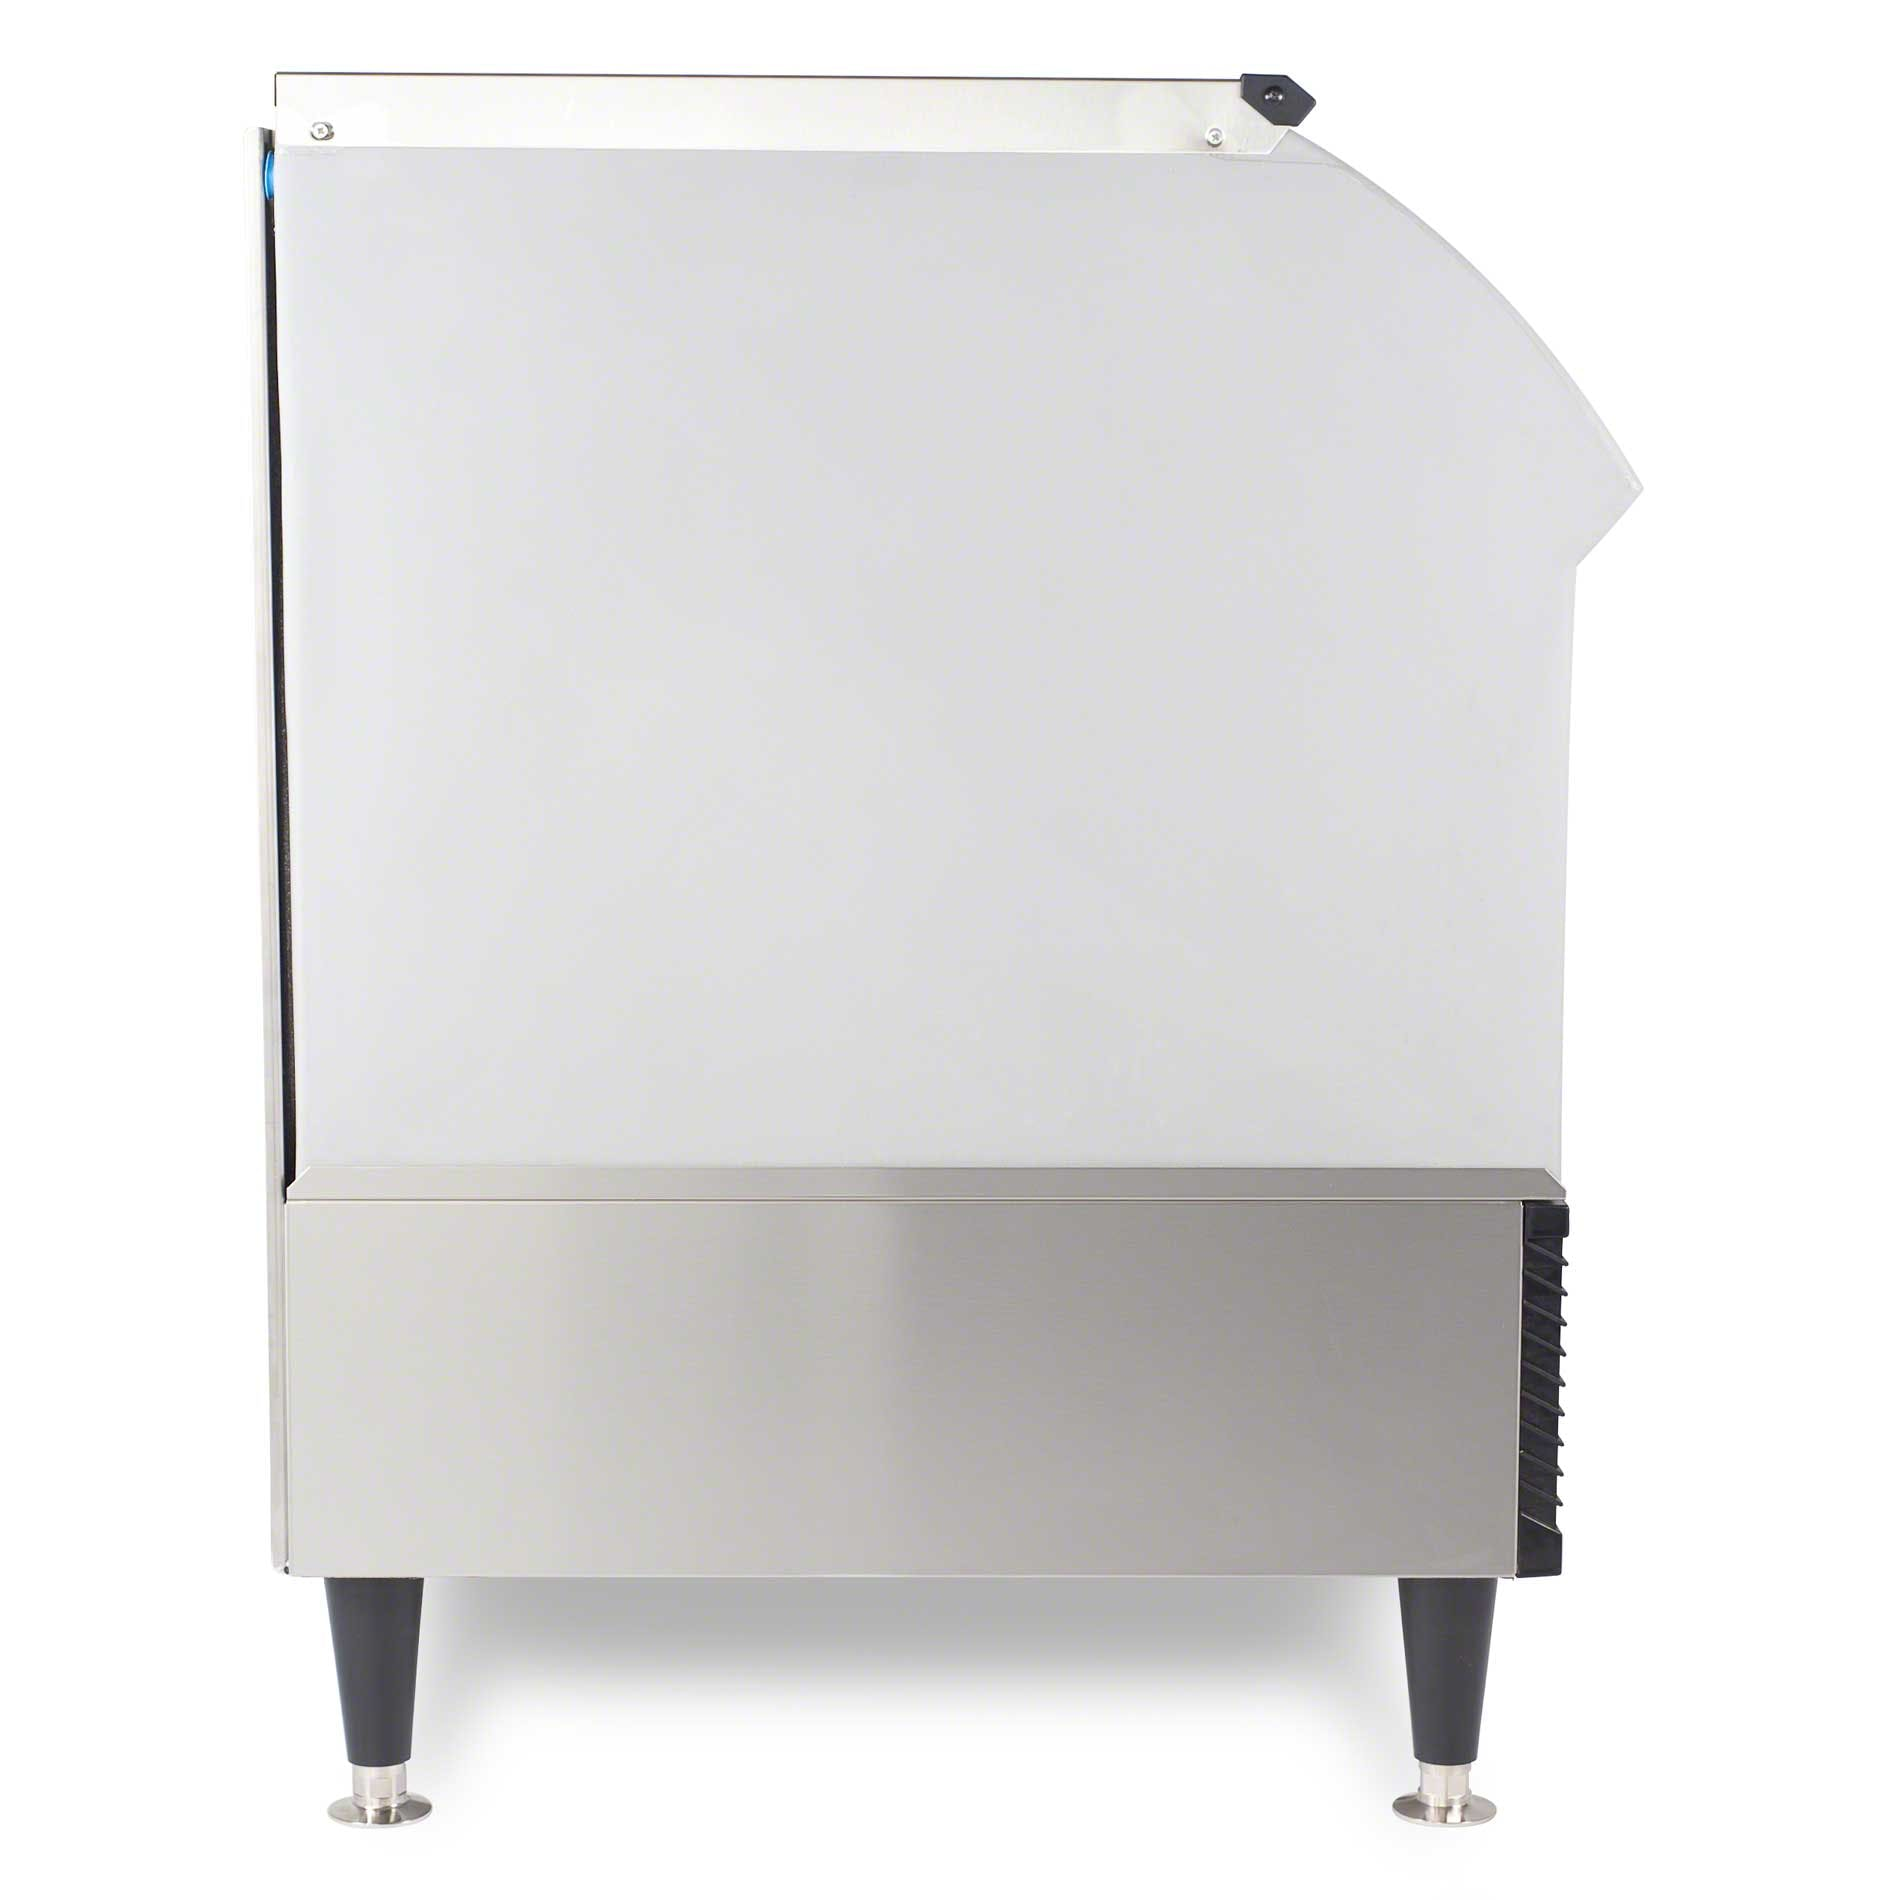 Ice-O-Matic - ICEU300FA 309 lb Self-Contained Full Cube Ice Machine - sold by Food Service Warehouse